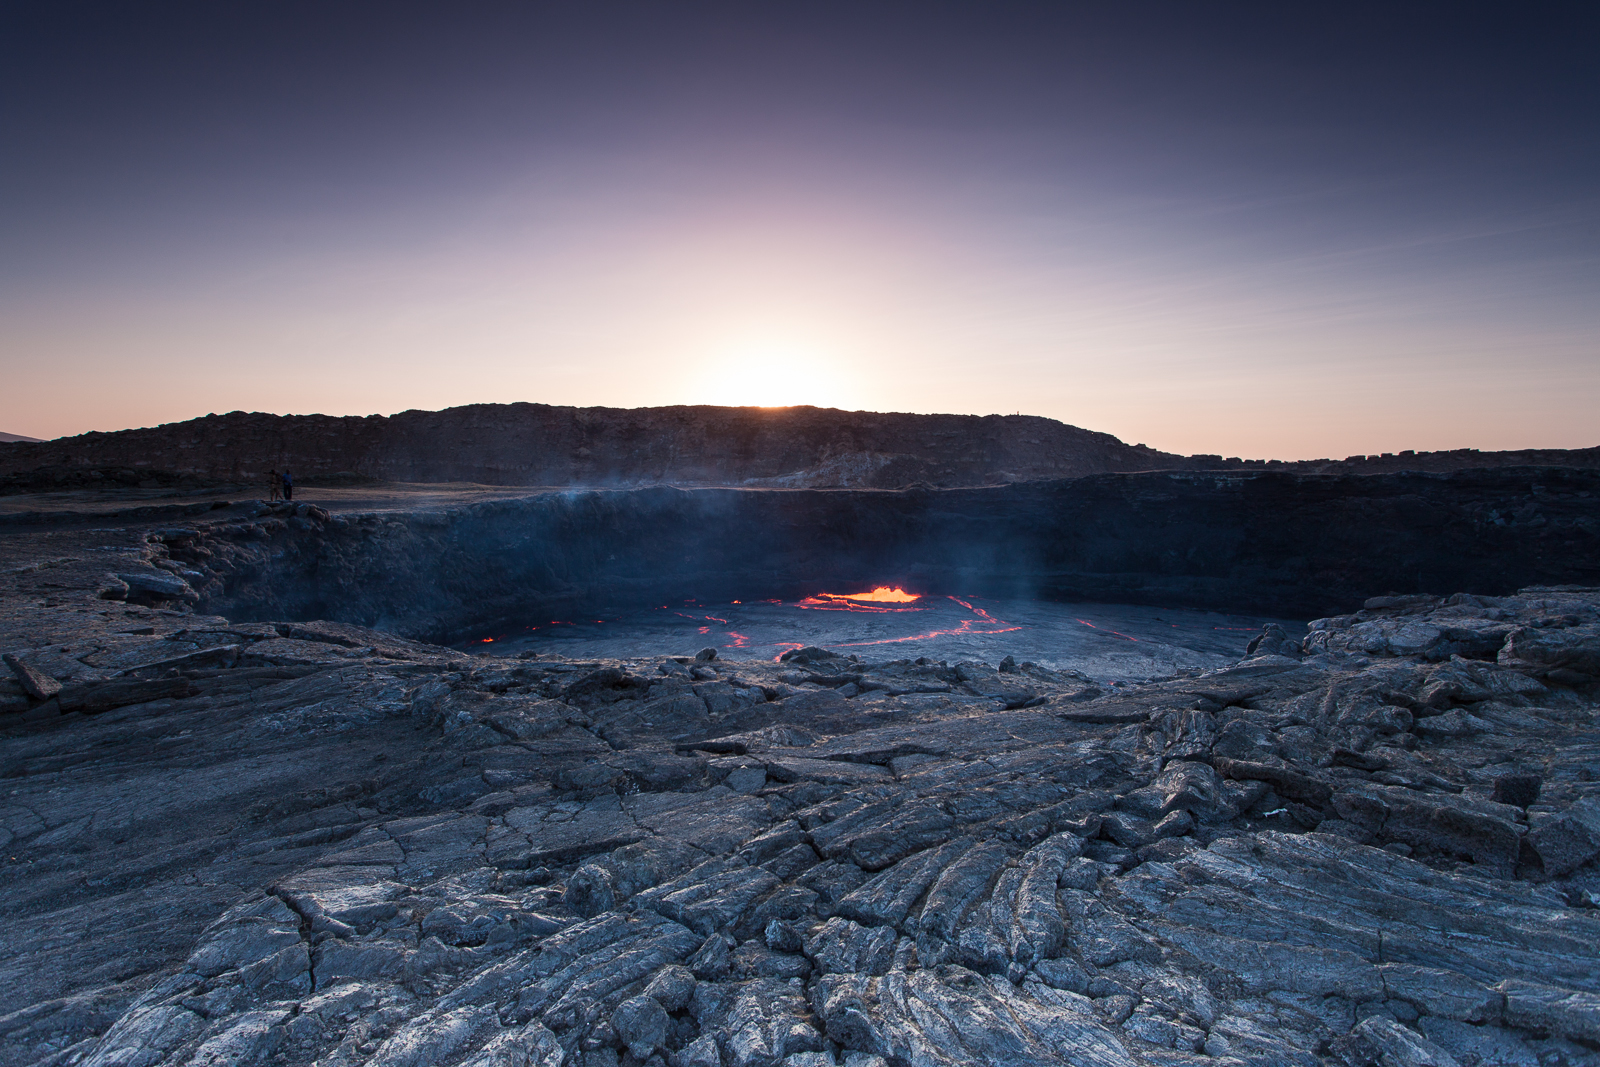 The lava lake at dawn is surrounded by a fragile lava landscape with its own unique beauty. [Click to enlarge!] (20mm, 1/15sec @ f/8, ISO 100)